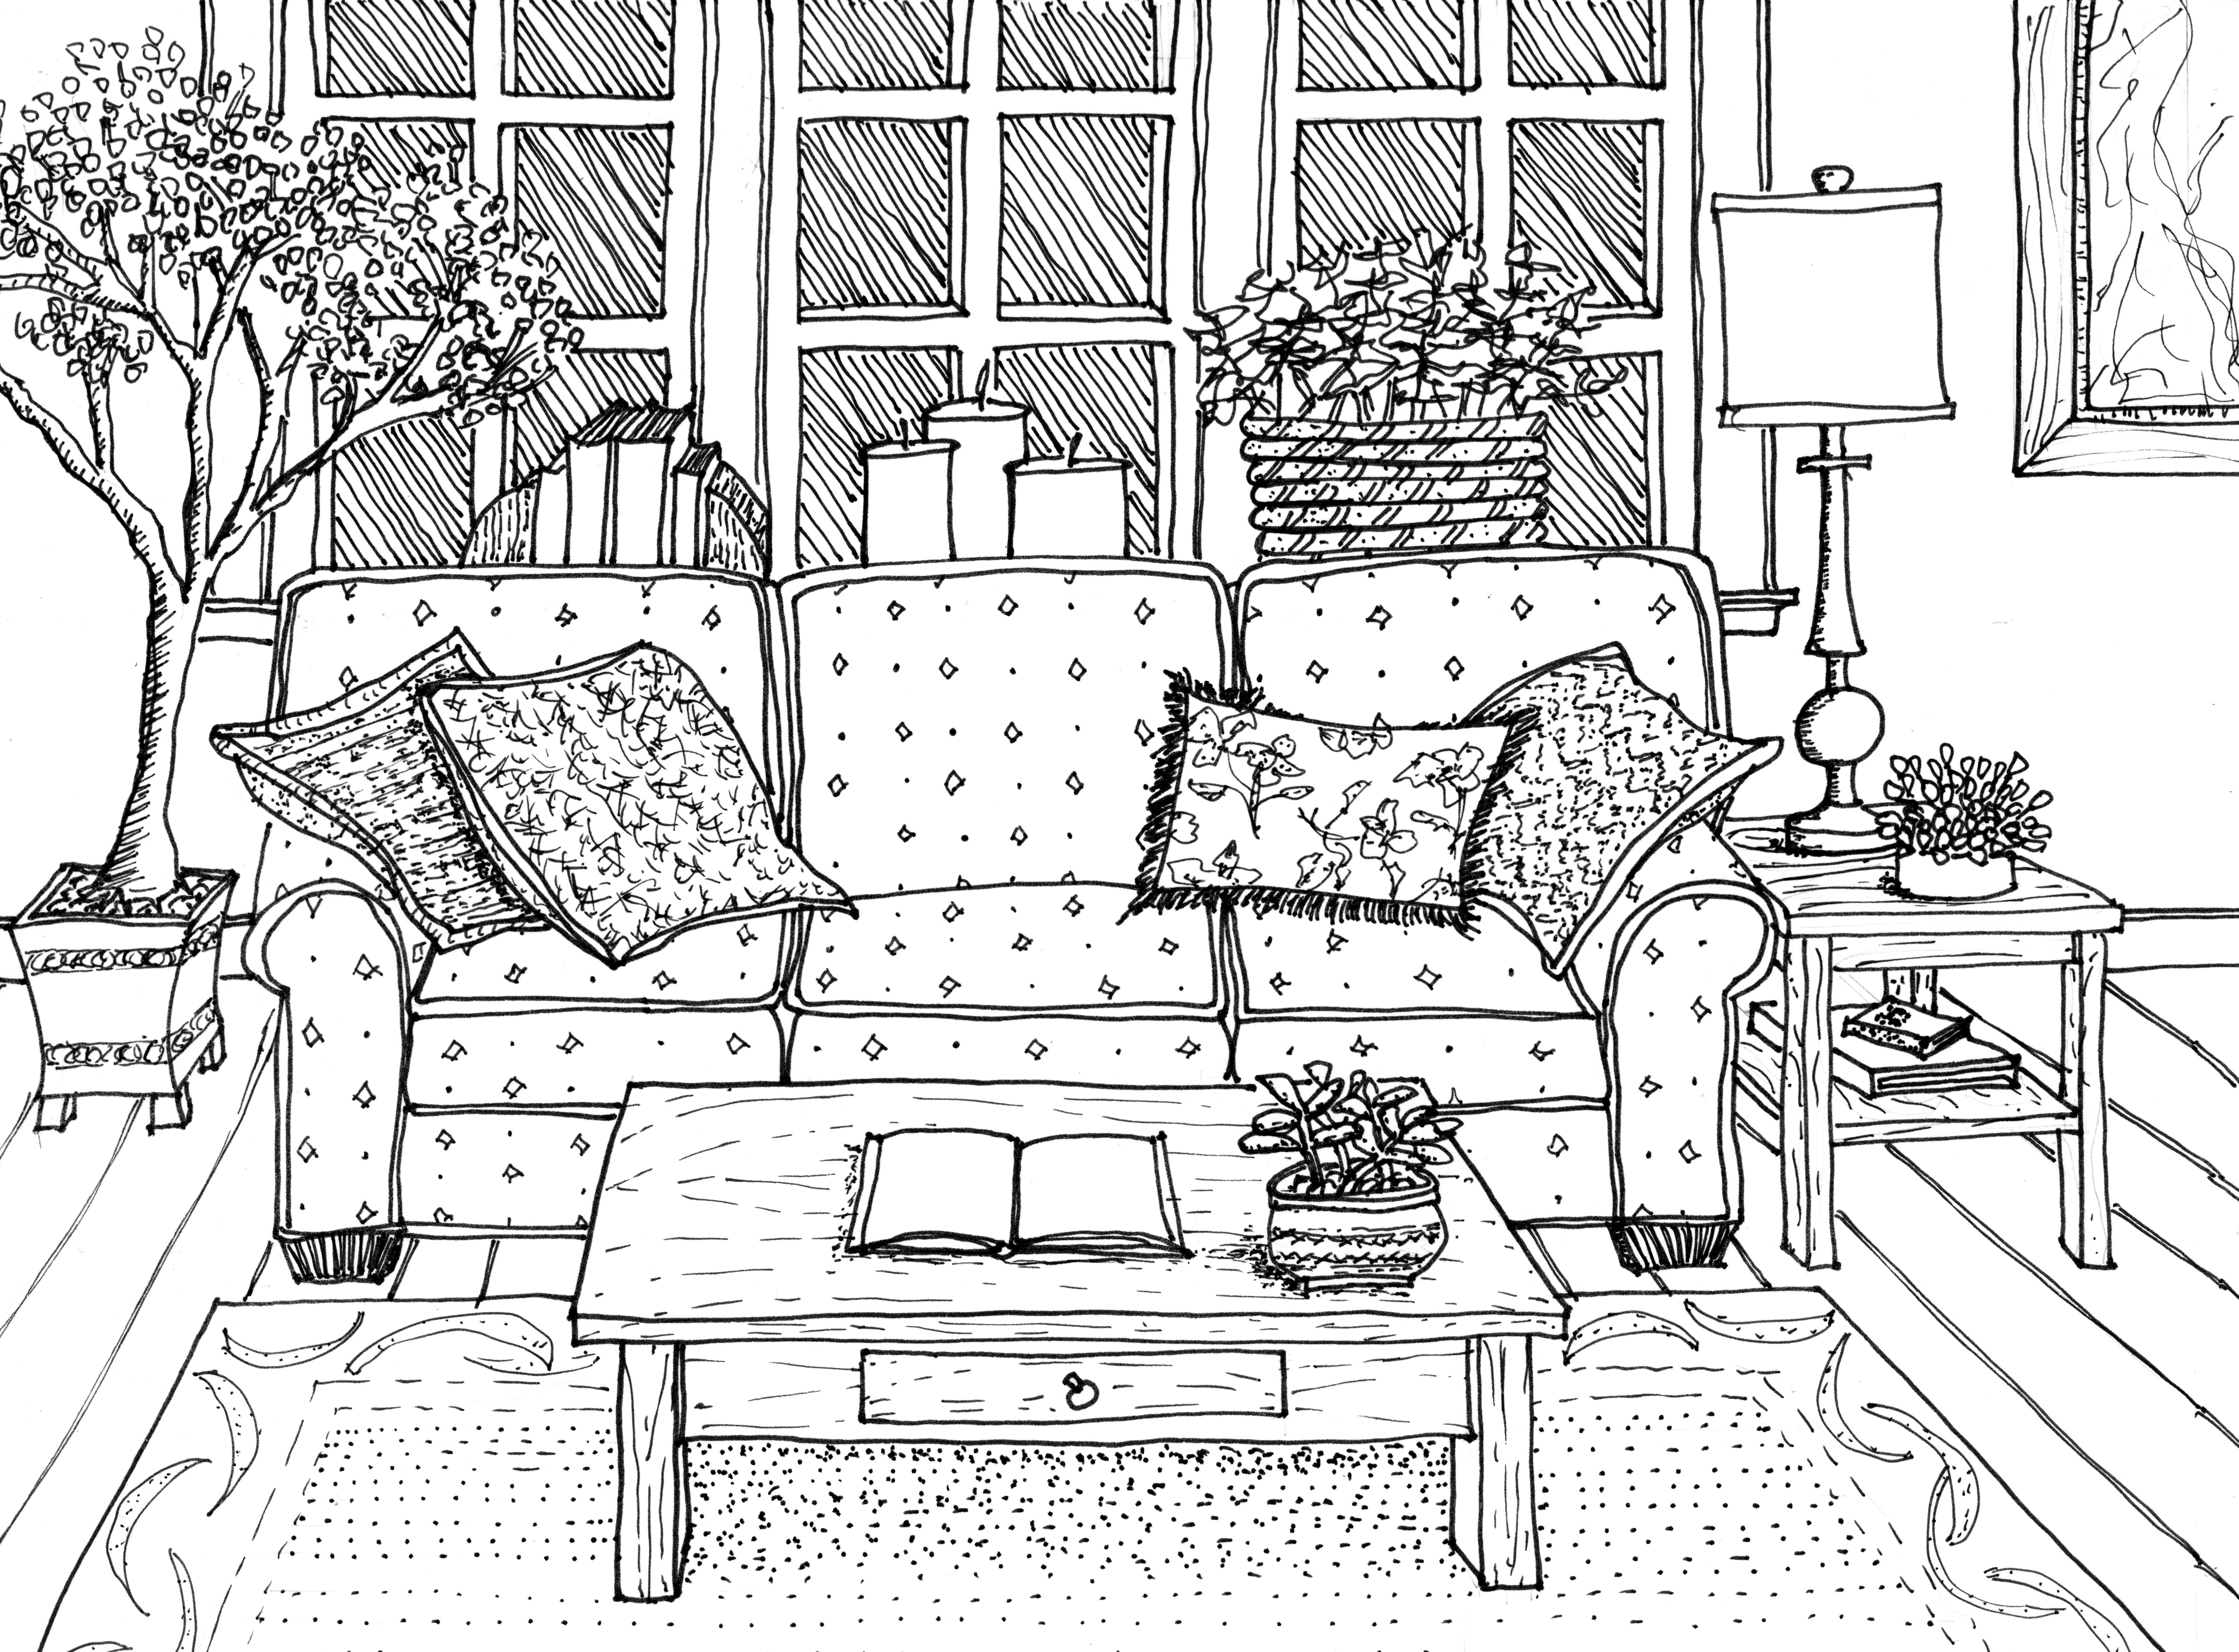 Drawn sofa architectural drawing Rendering Interiors Hand texture +